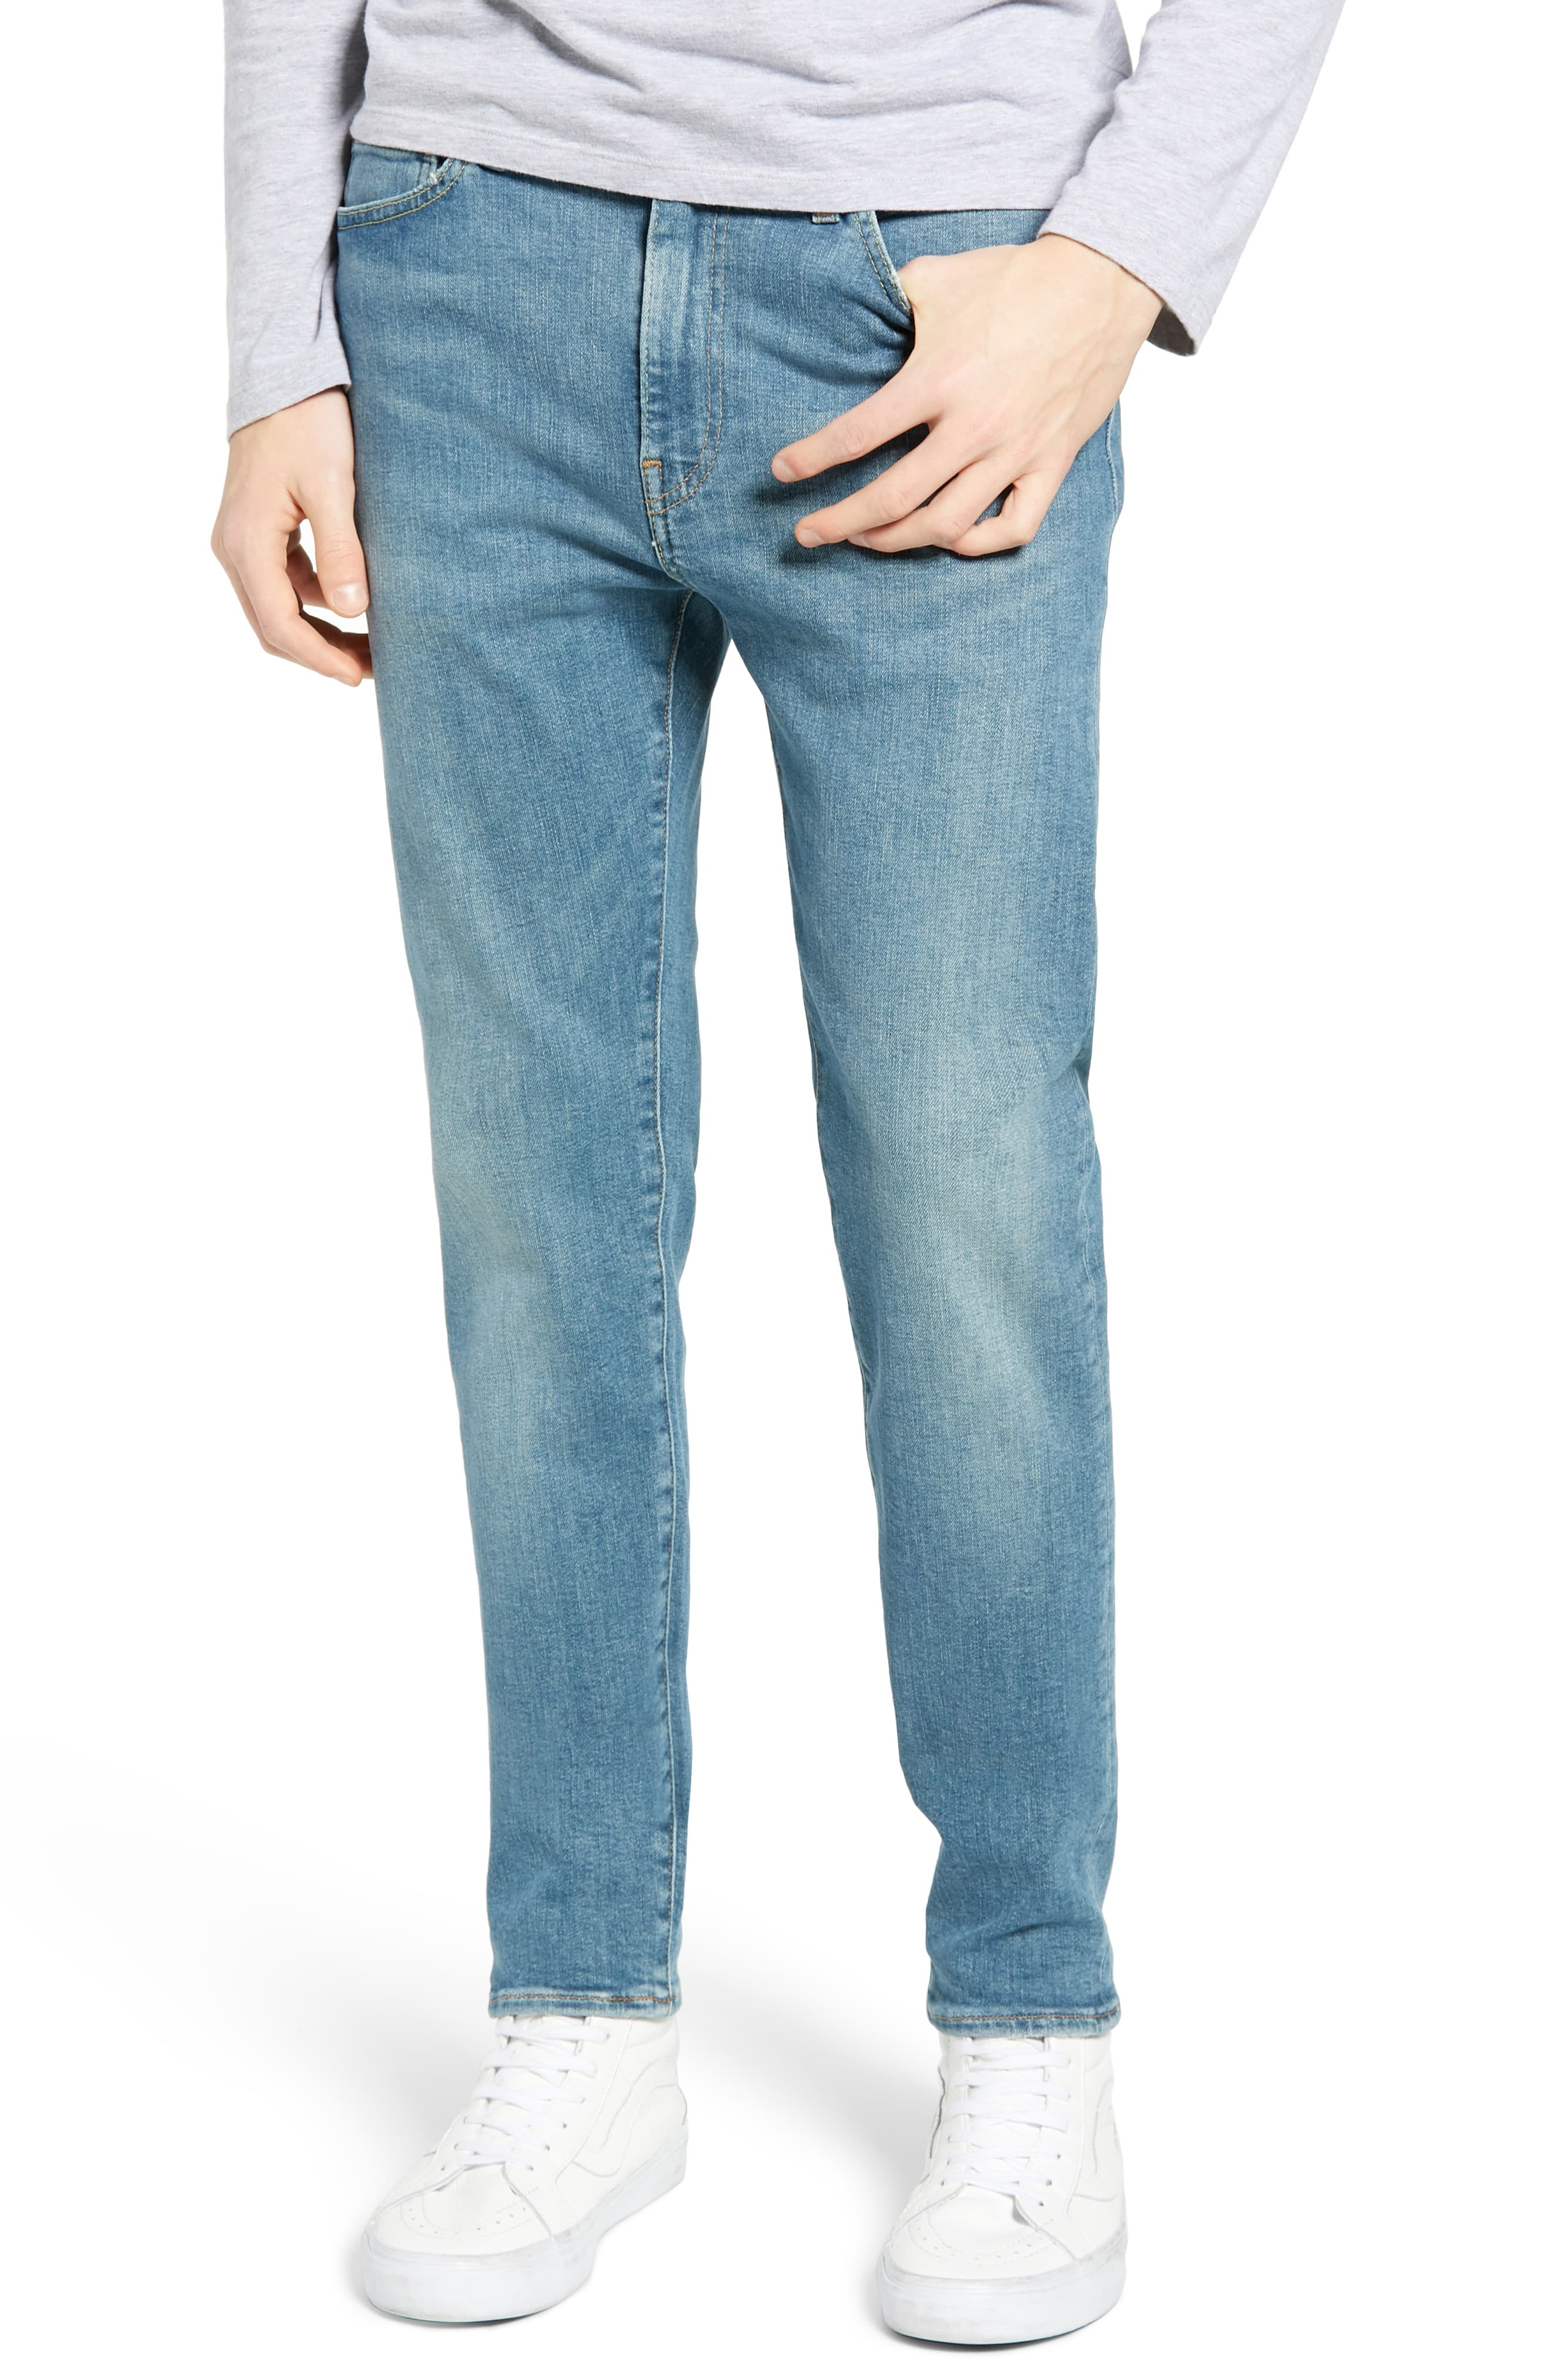 19b2aed6 Men's Levi's 510(TM) Skinny Fit Jeans, Size 30 x 32 – Blue | The ...